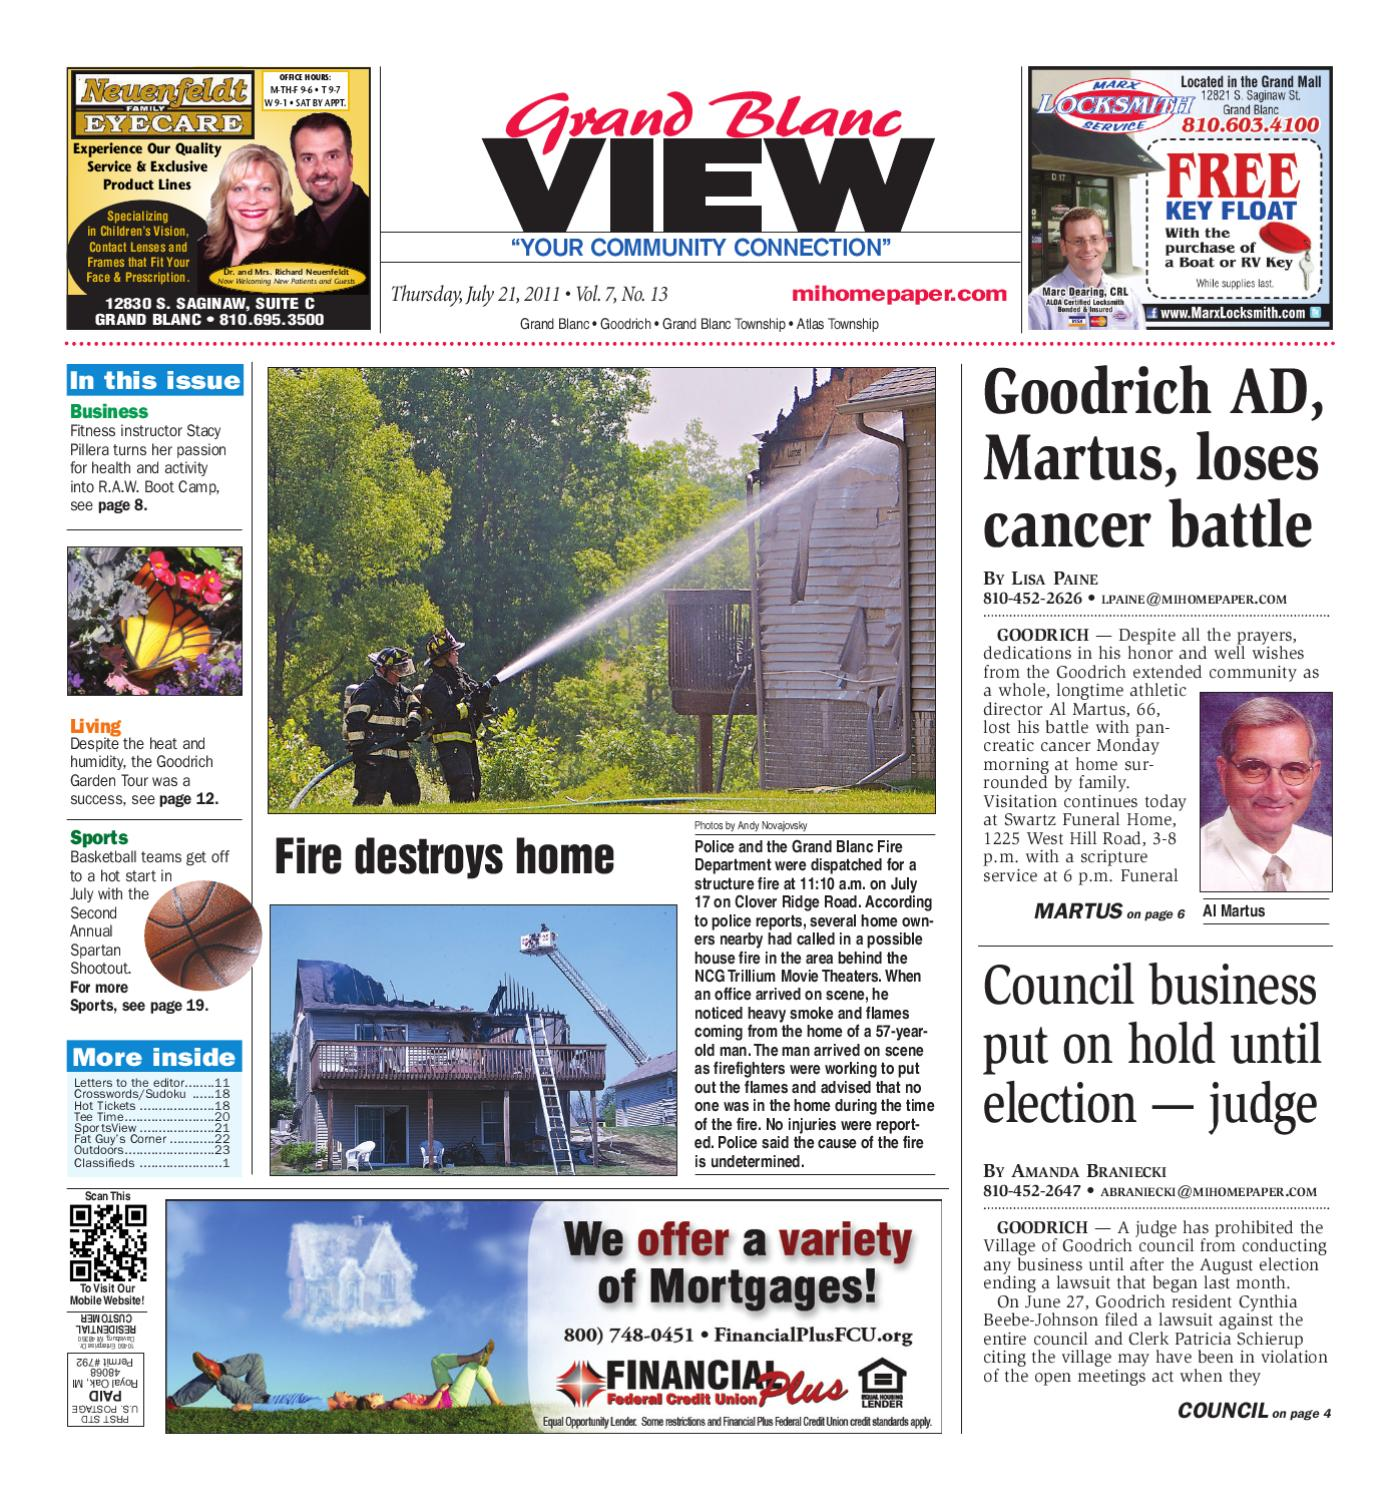 GBVIEW FOR MPA 7-21-12 by County Press - issuu